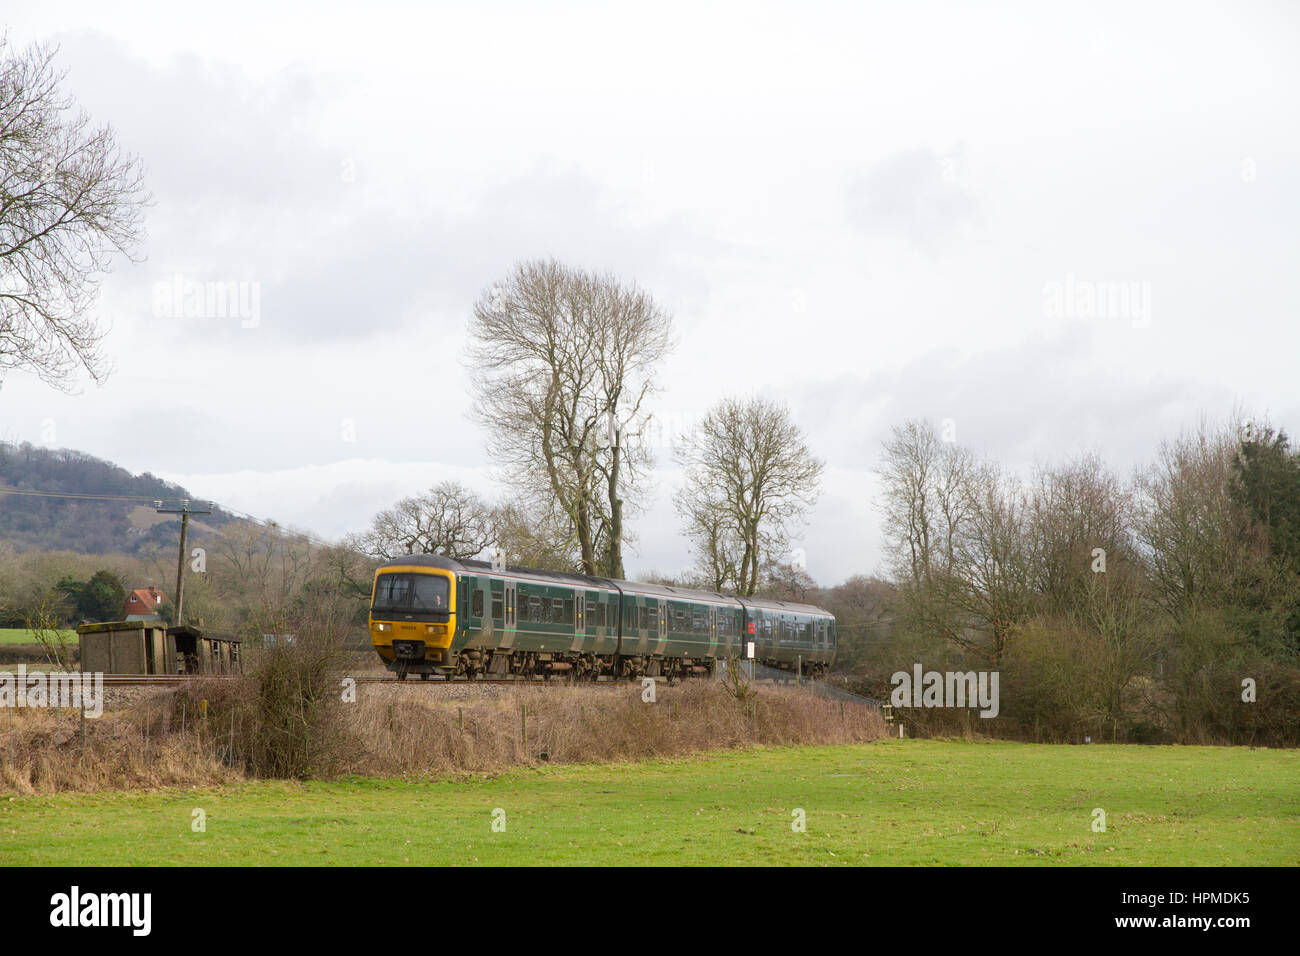 BETCHWORTH, SURREY, ENGLAND - FEBRUARY 4TH 2017 - A class 166 Turbo Express DMU working a GWR service over the North - Stock Image